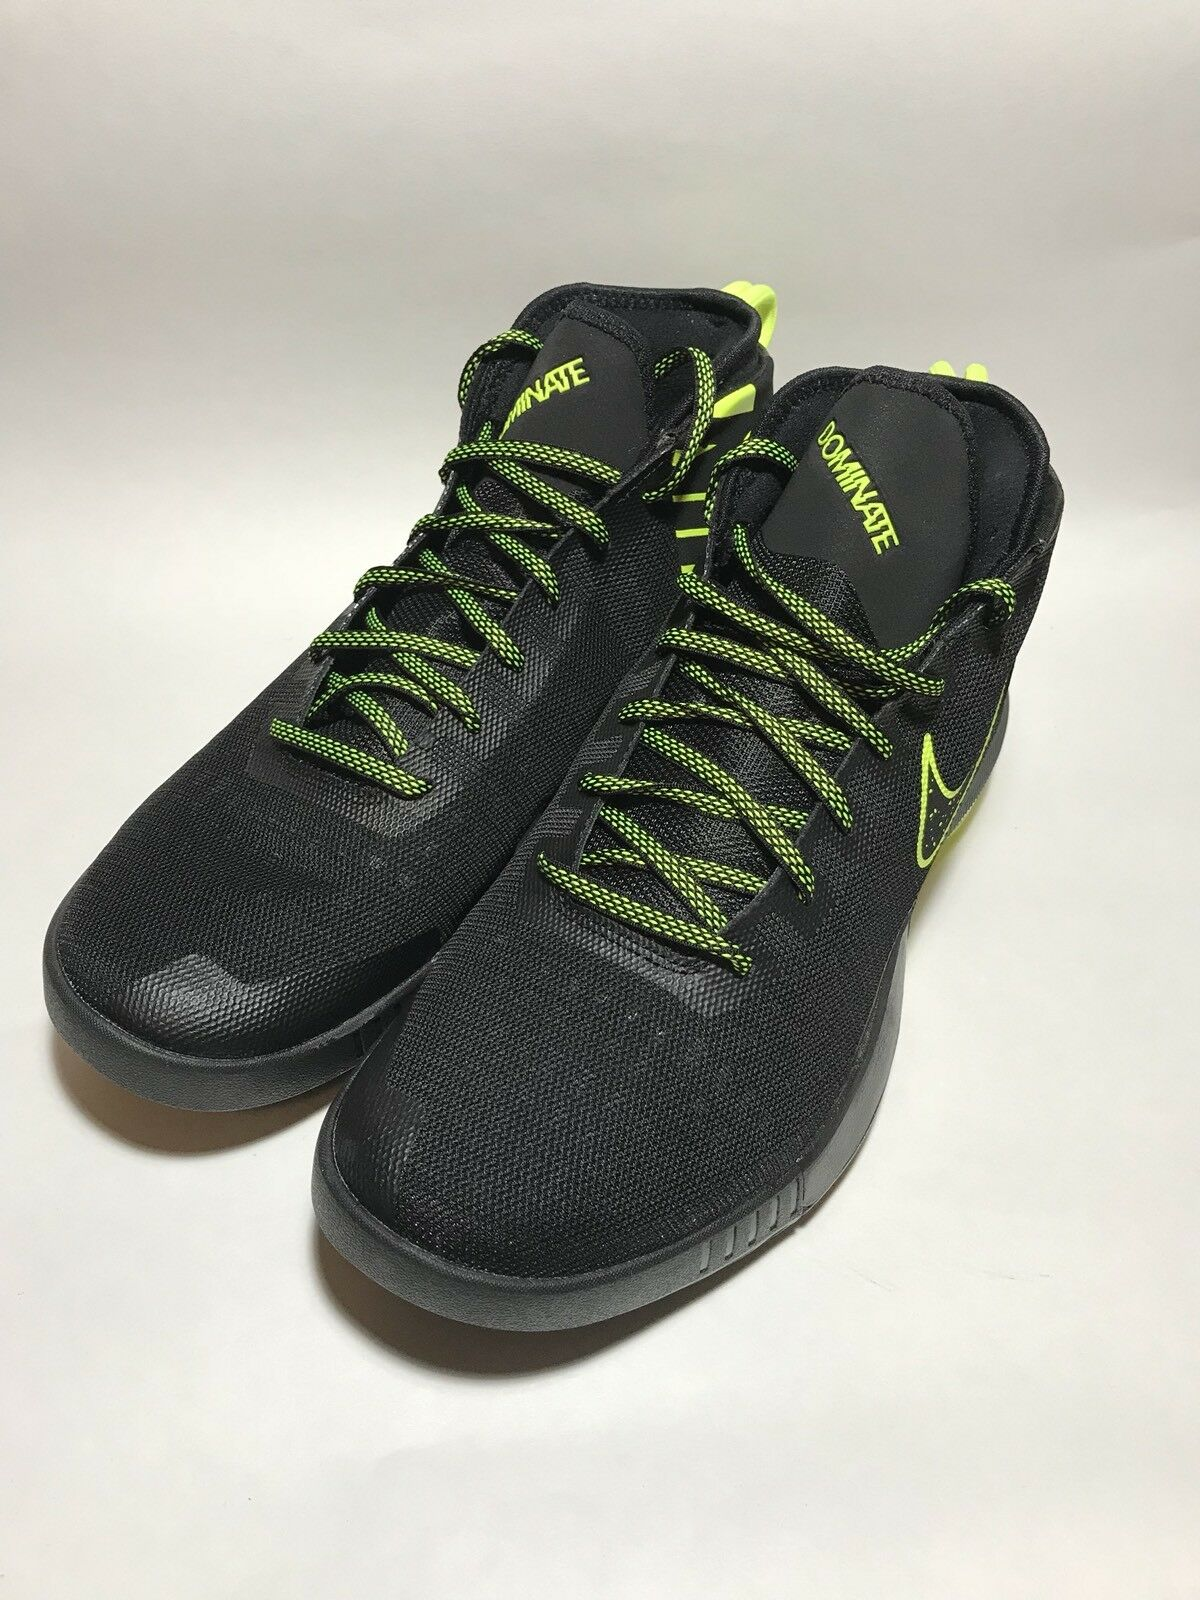 NEW NIKE AIR MAX DOMINATE BLACK VOLT DARK GREY 897651-003 SIZE 11 (No Box)